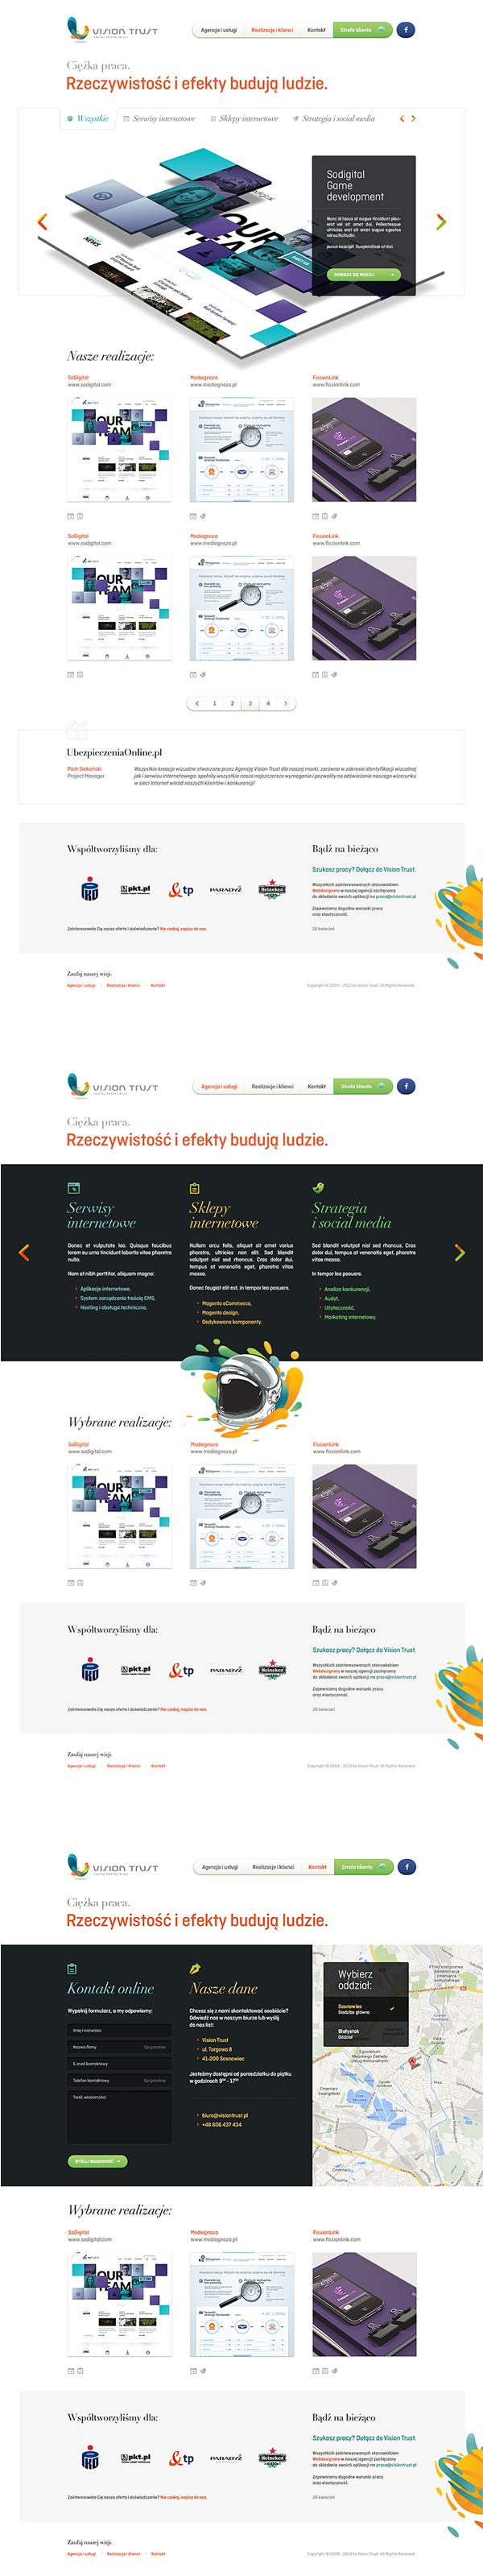 Vision Trust / Our story by Vision Trust, via Behance